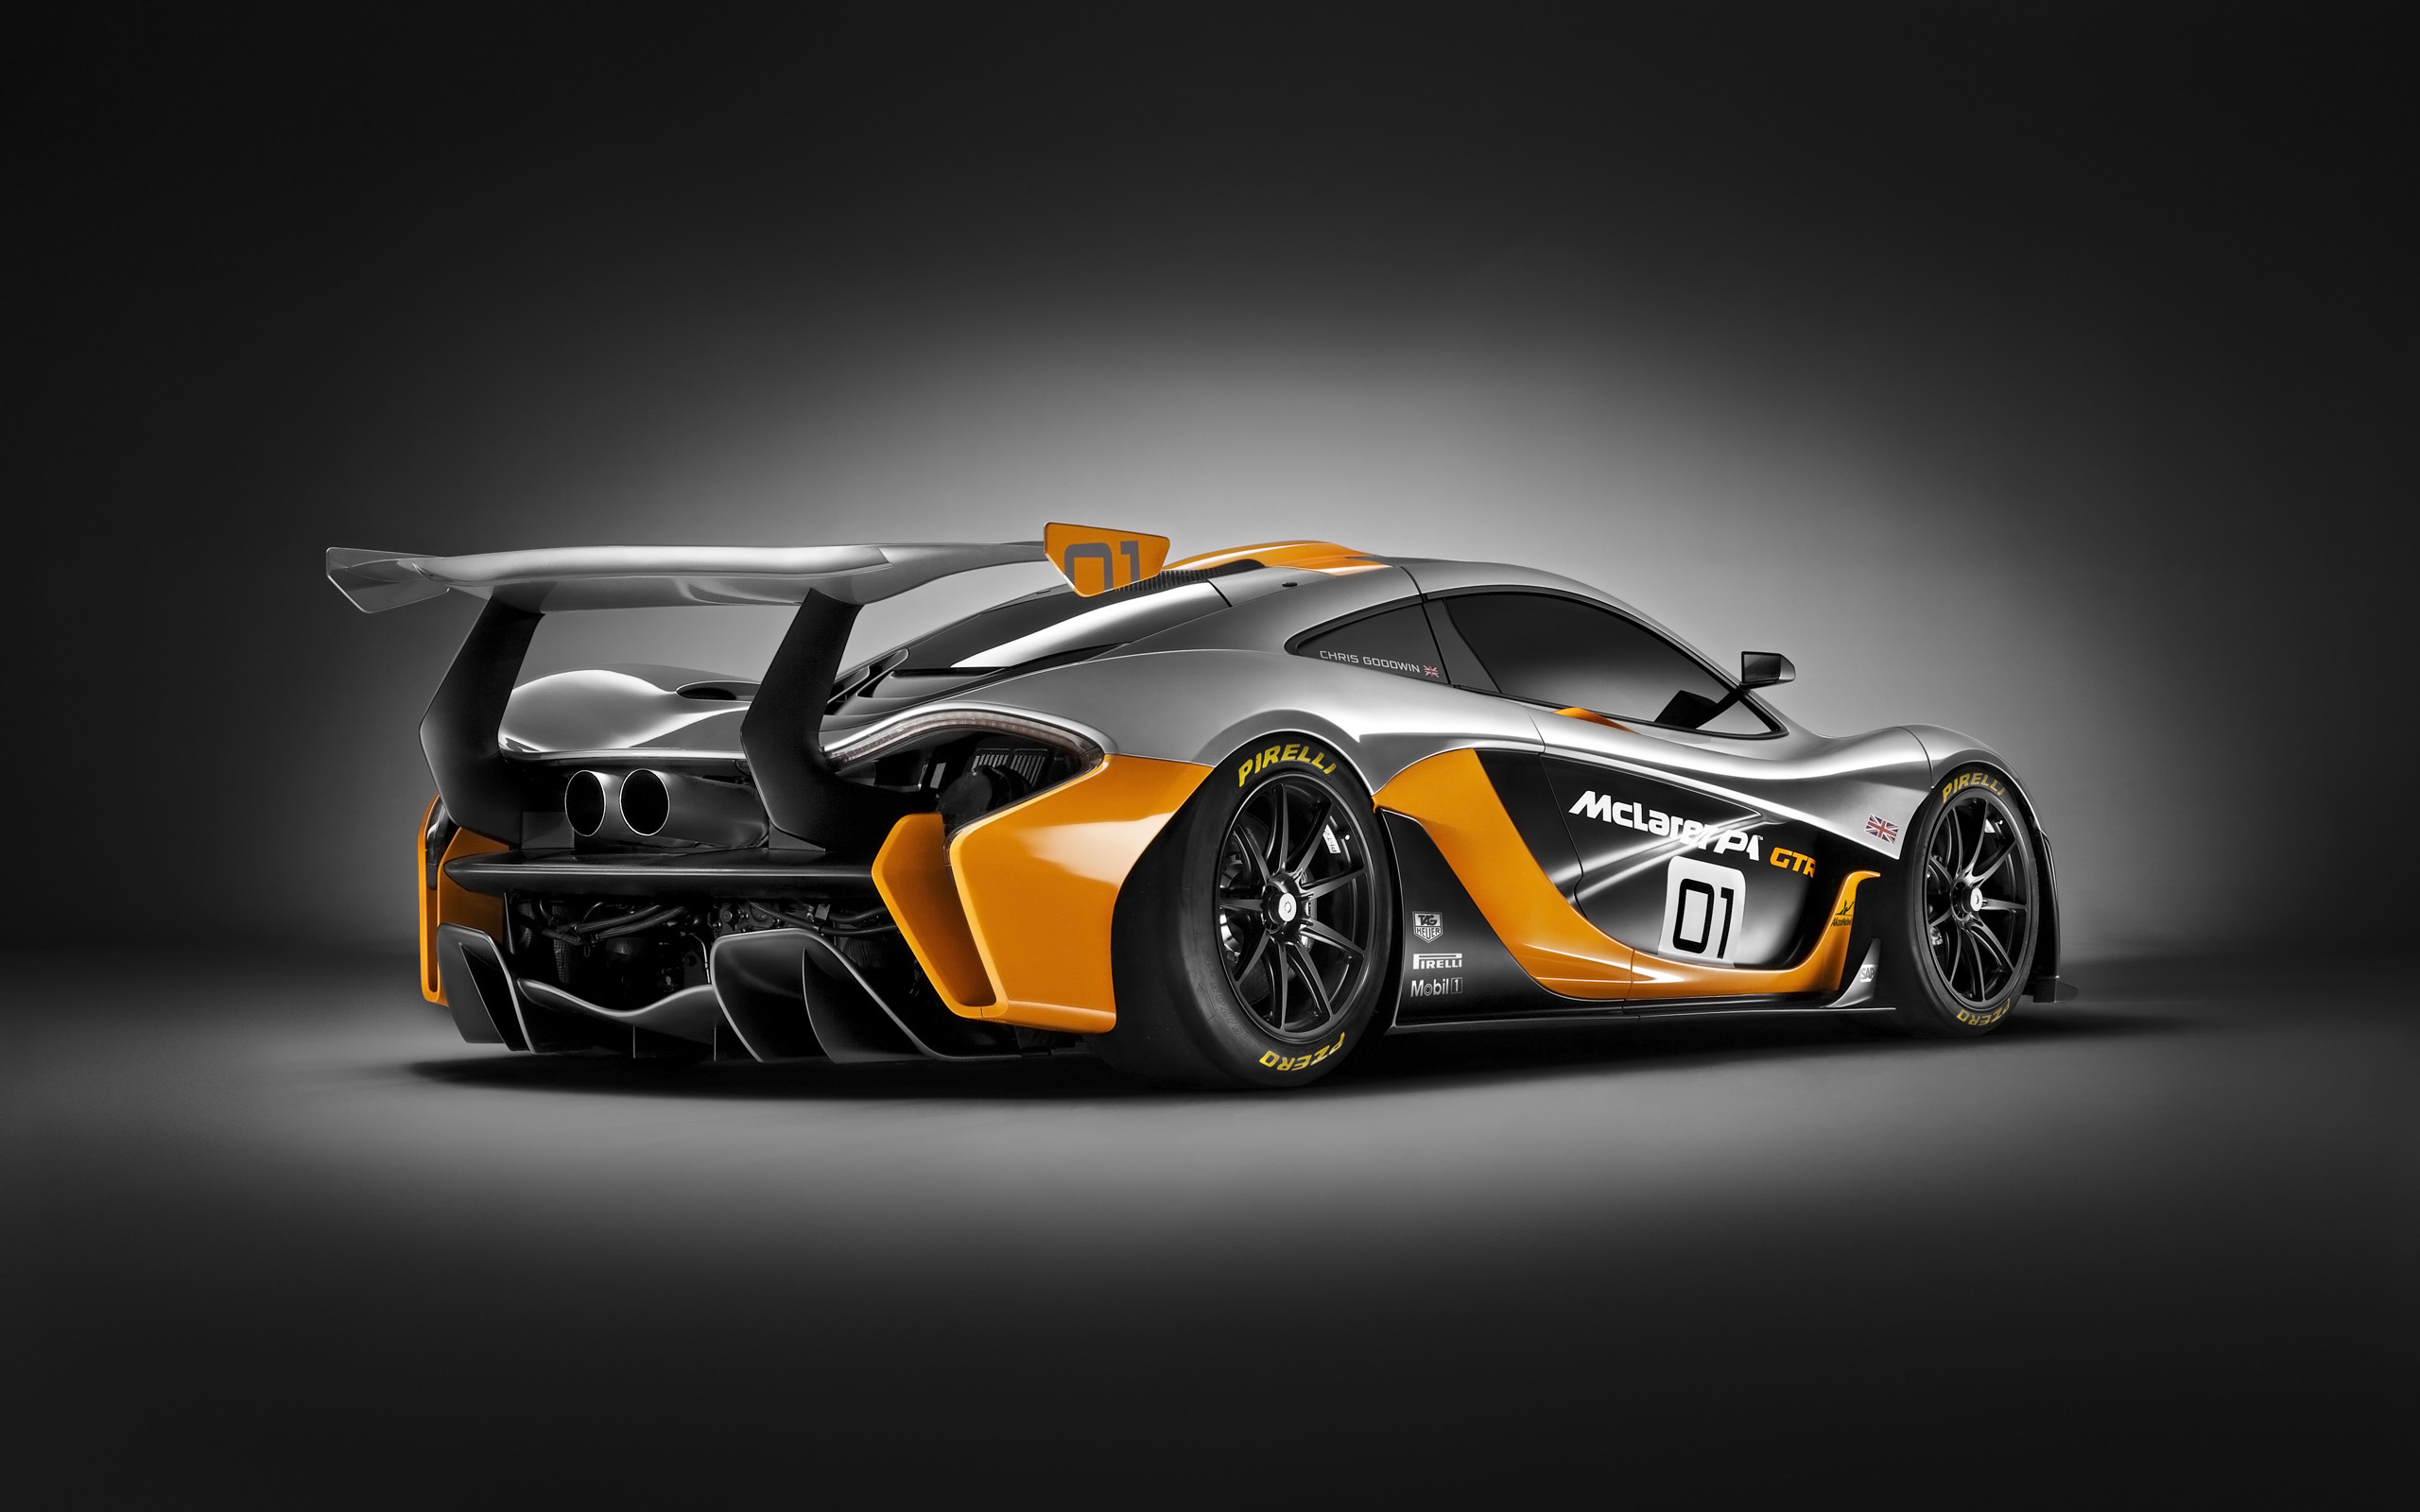 acura vs lexus html with 2014 Mclaren P1 Gtr Design Concept 2 Wallpapers on Mercedes amg gts cgi 4k Wallpapers in addition Chevrolet Aveo 2012 furthermore 2018 mclaren senna 4k 2 Wallpapers as well Mid Size Suv From Ds Leaks Online With in addition 2015 infiniti q60 concept 2 Wallpapers.